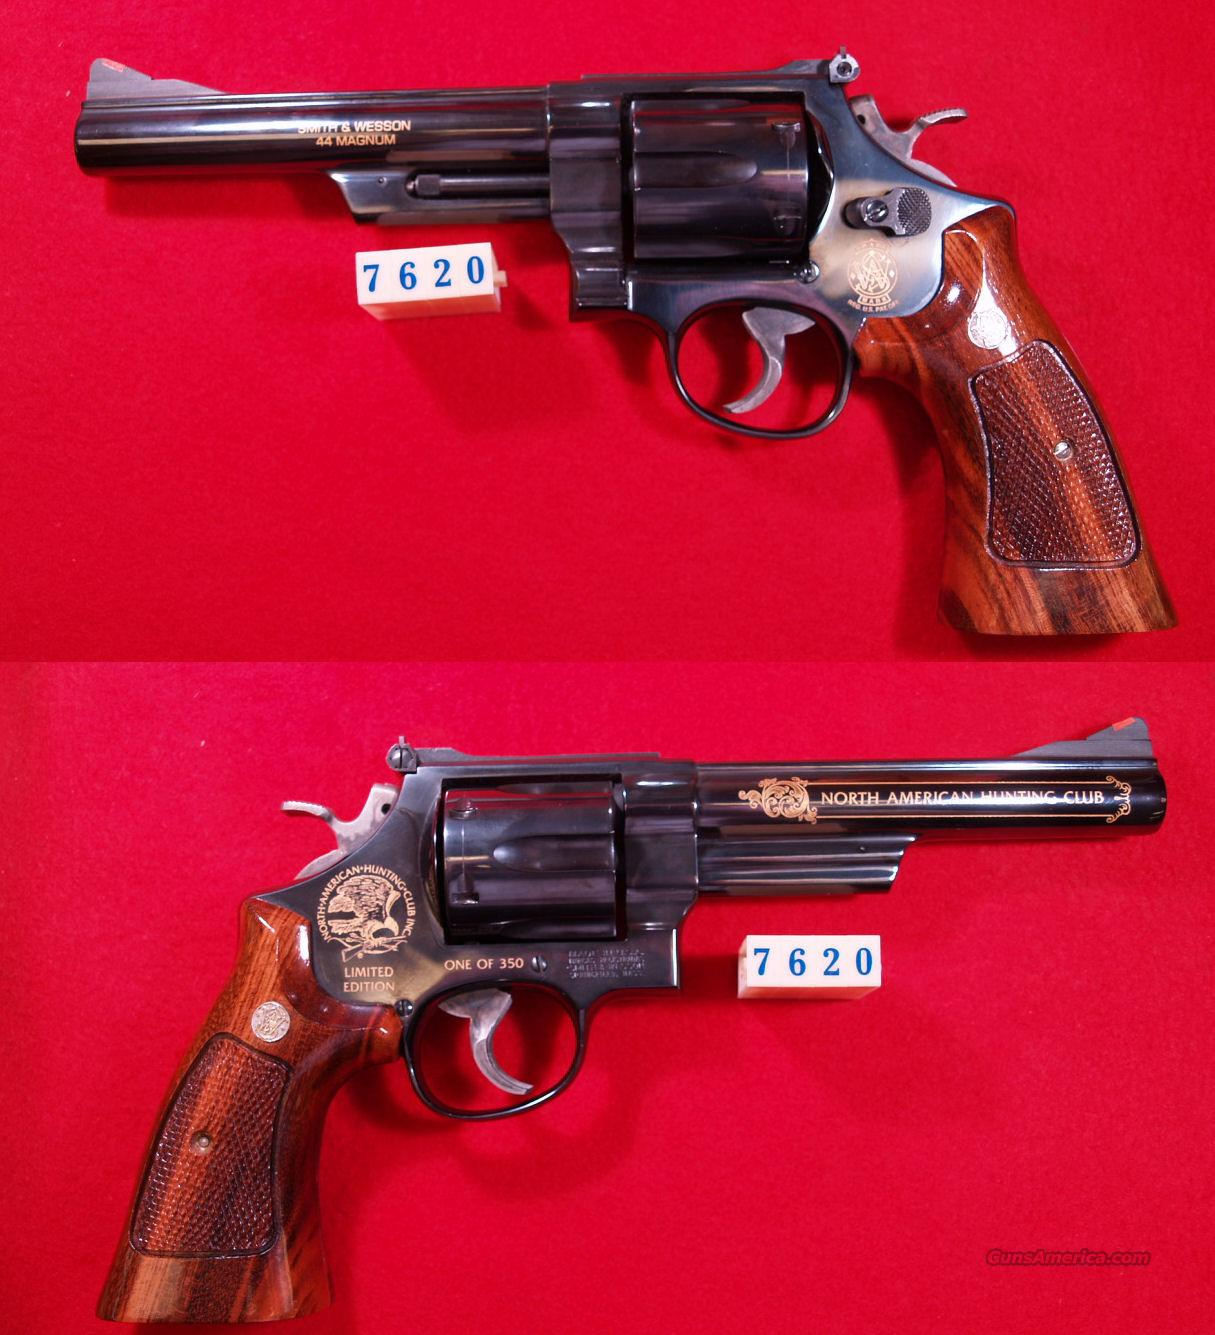 S&W M-29-3  44 MAG LIMITED EDITION  Guns > Pistols > Smith & Wesson Revolvers > Full Frame Revolver